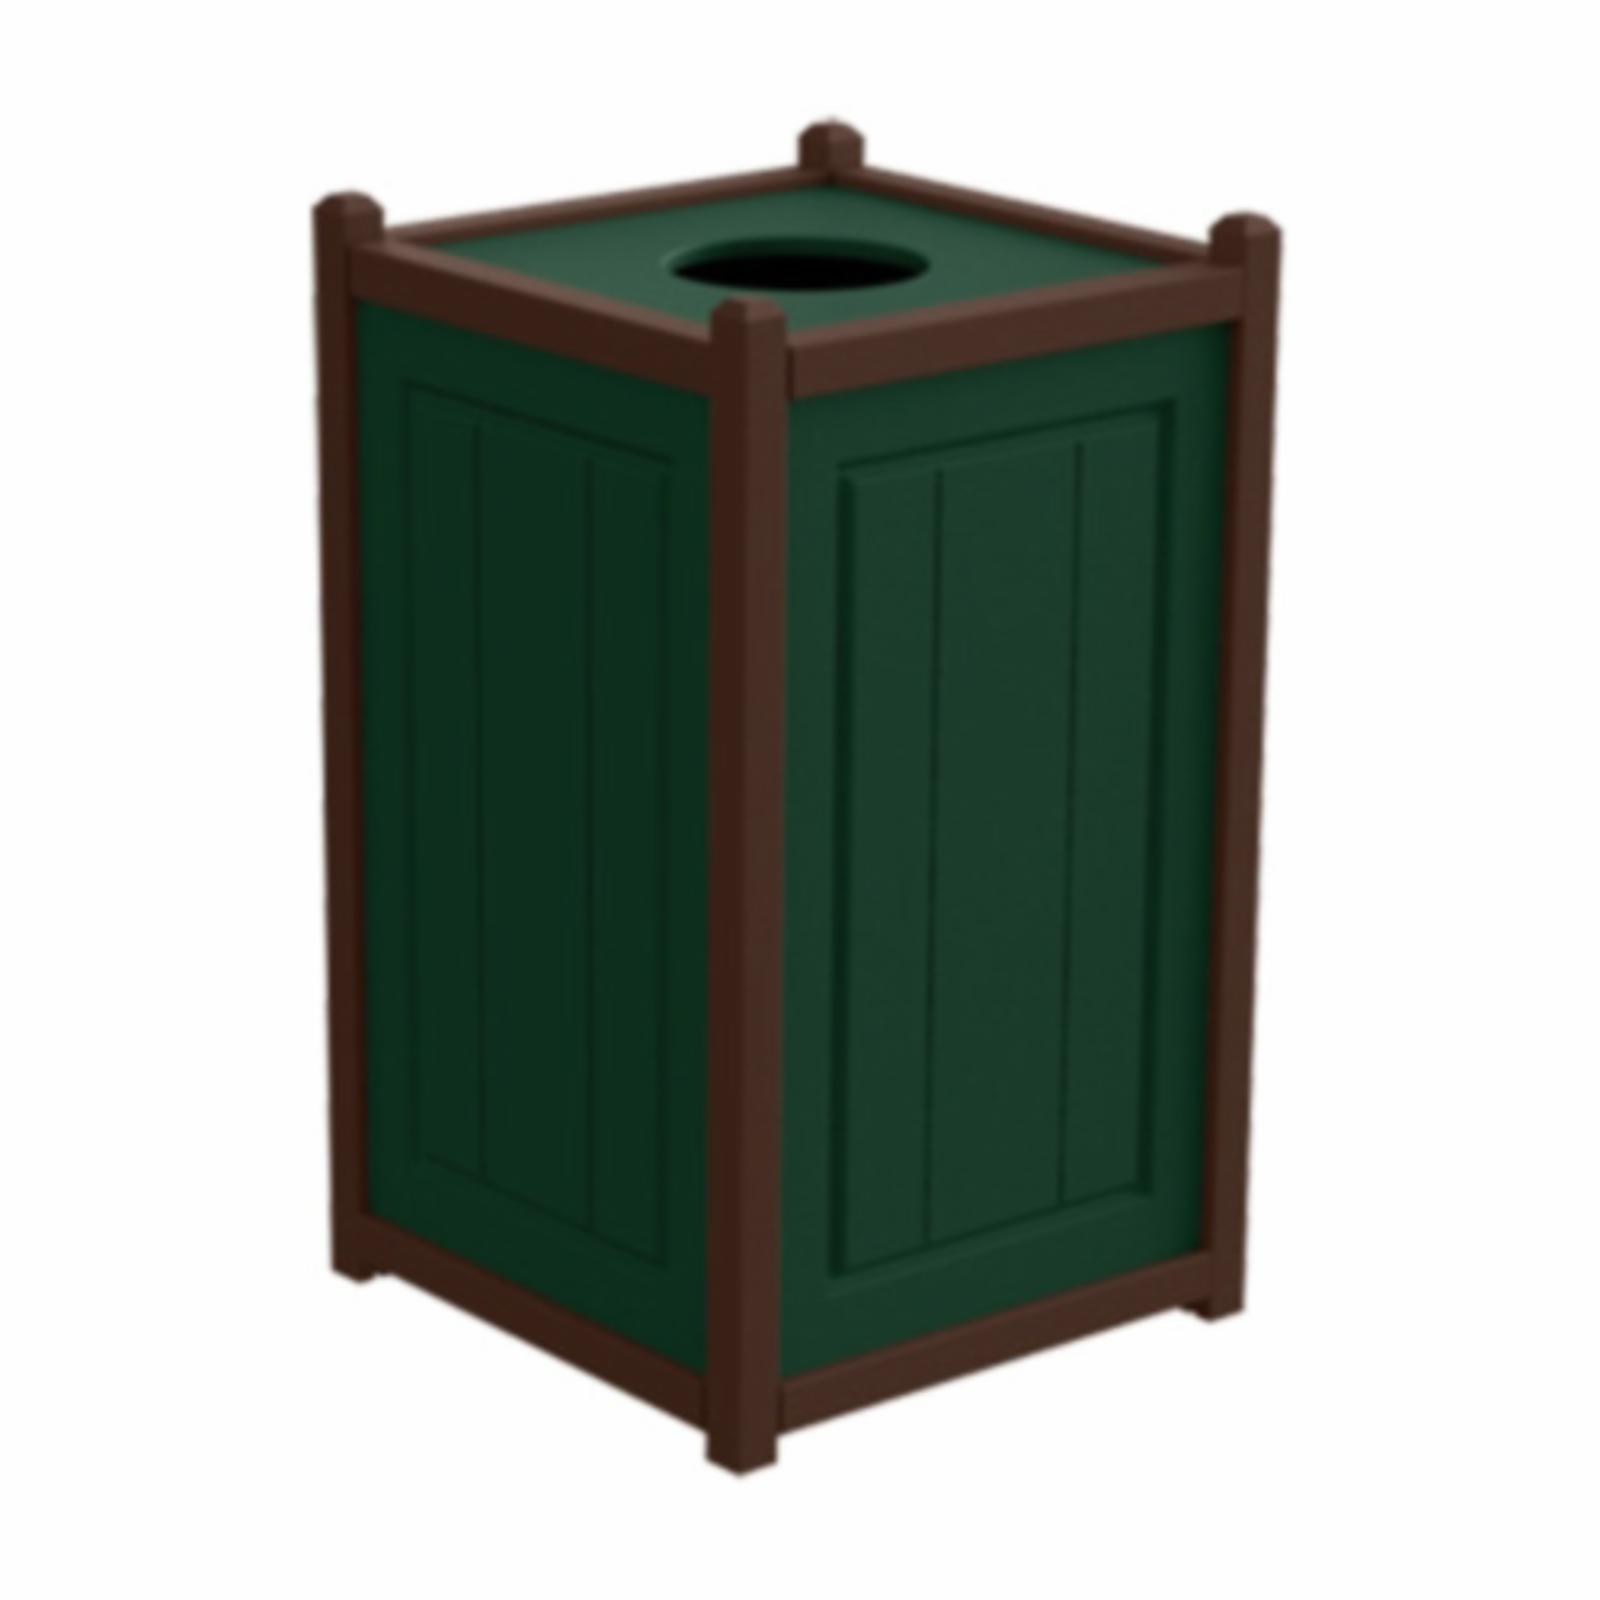 Treetop Products Two-Tone 33 Gallon Square Top Load Outdoor Trash Receptacle Green/Brown - 4ZK4759-GN/BN